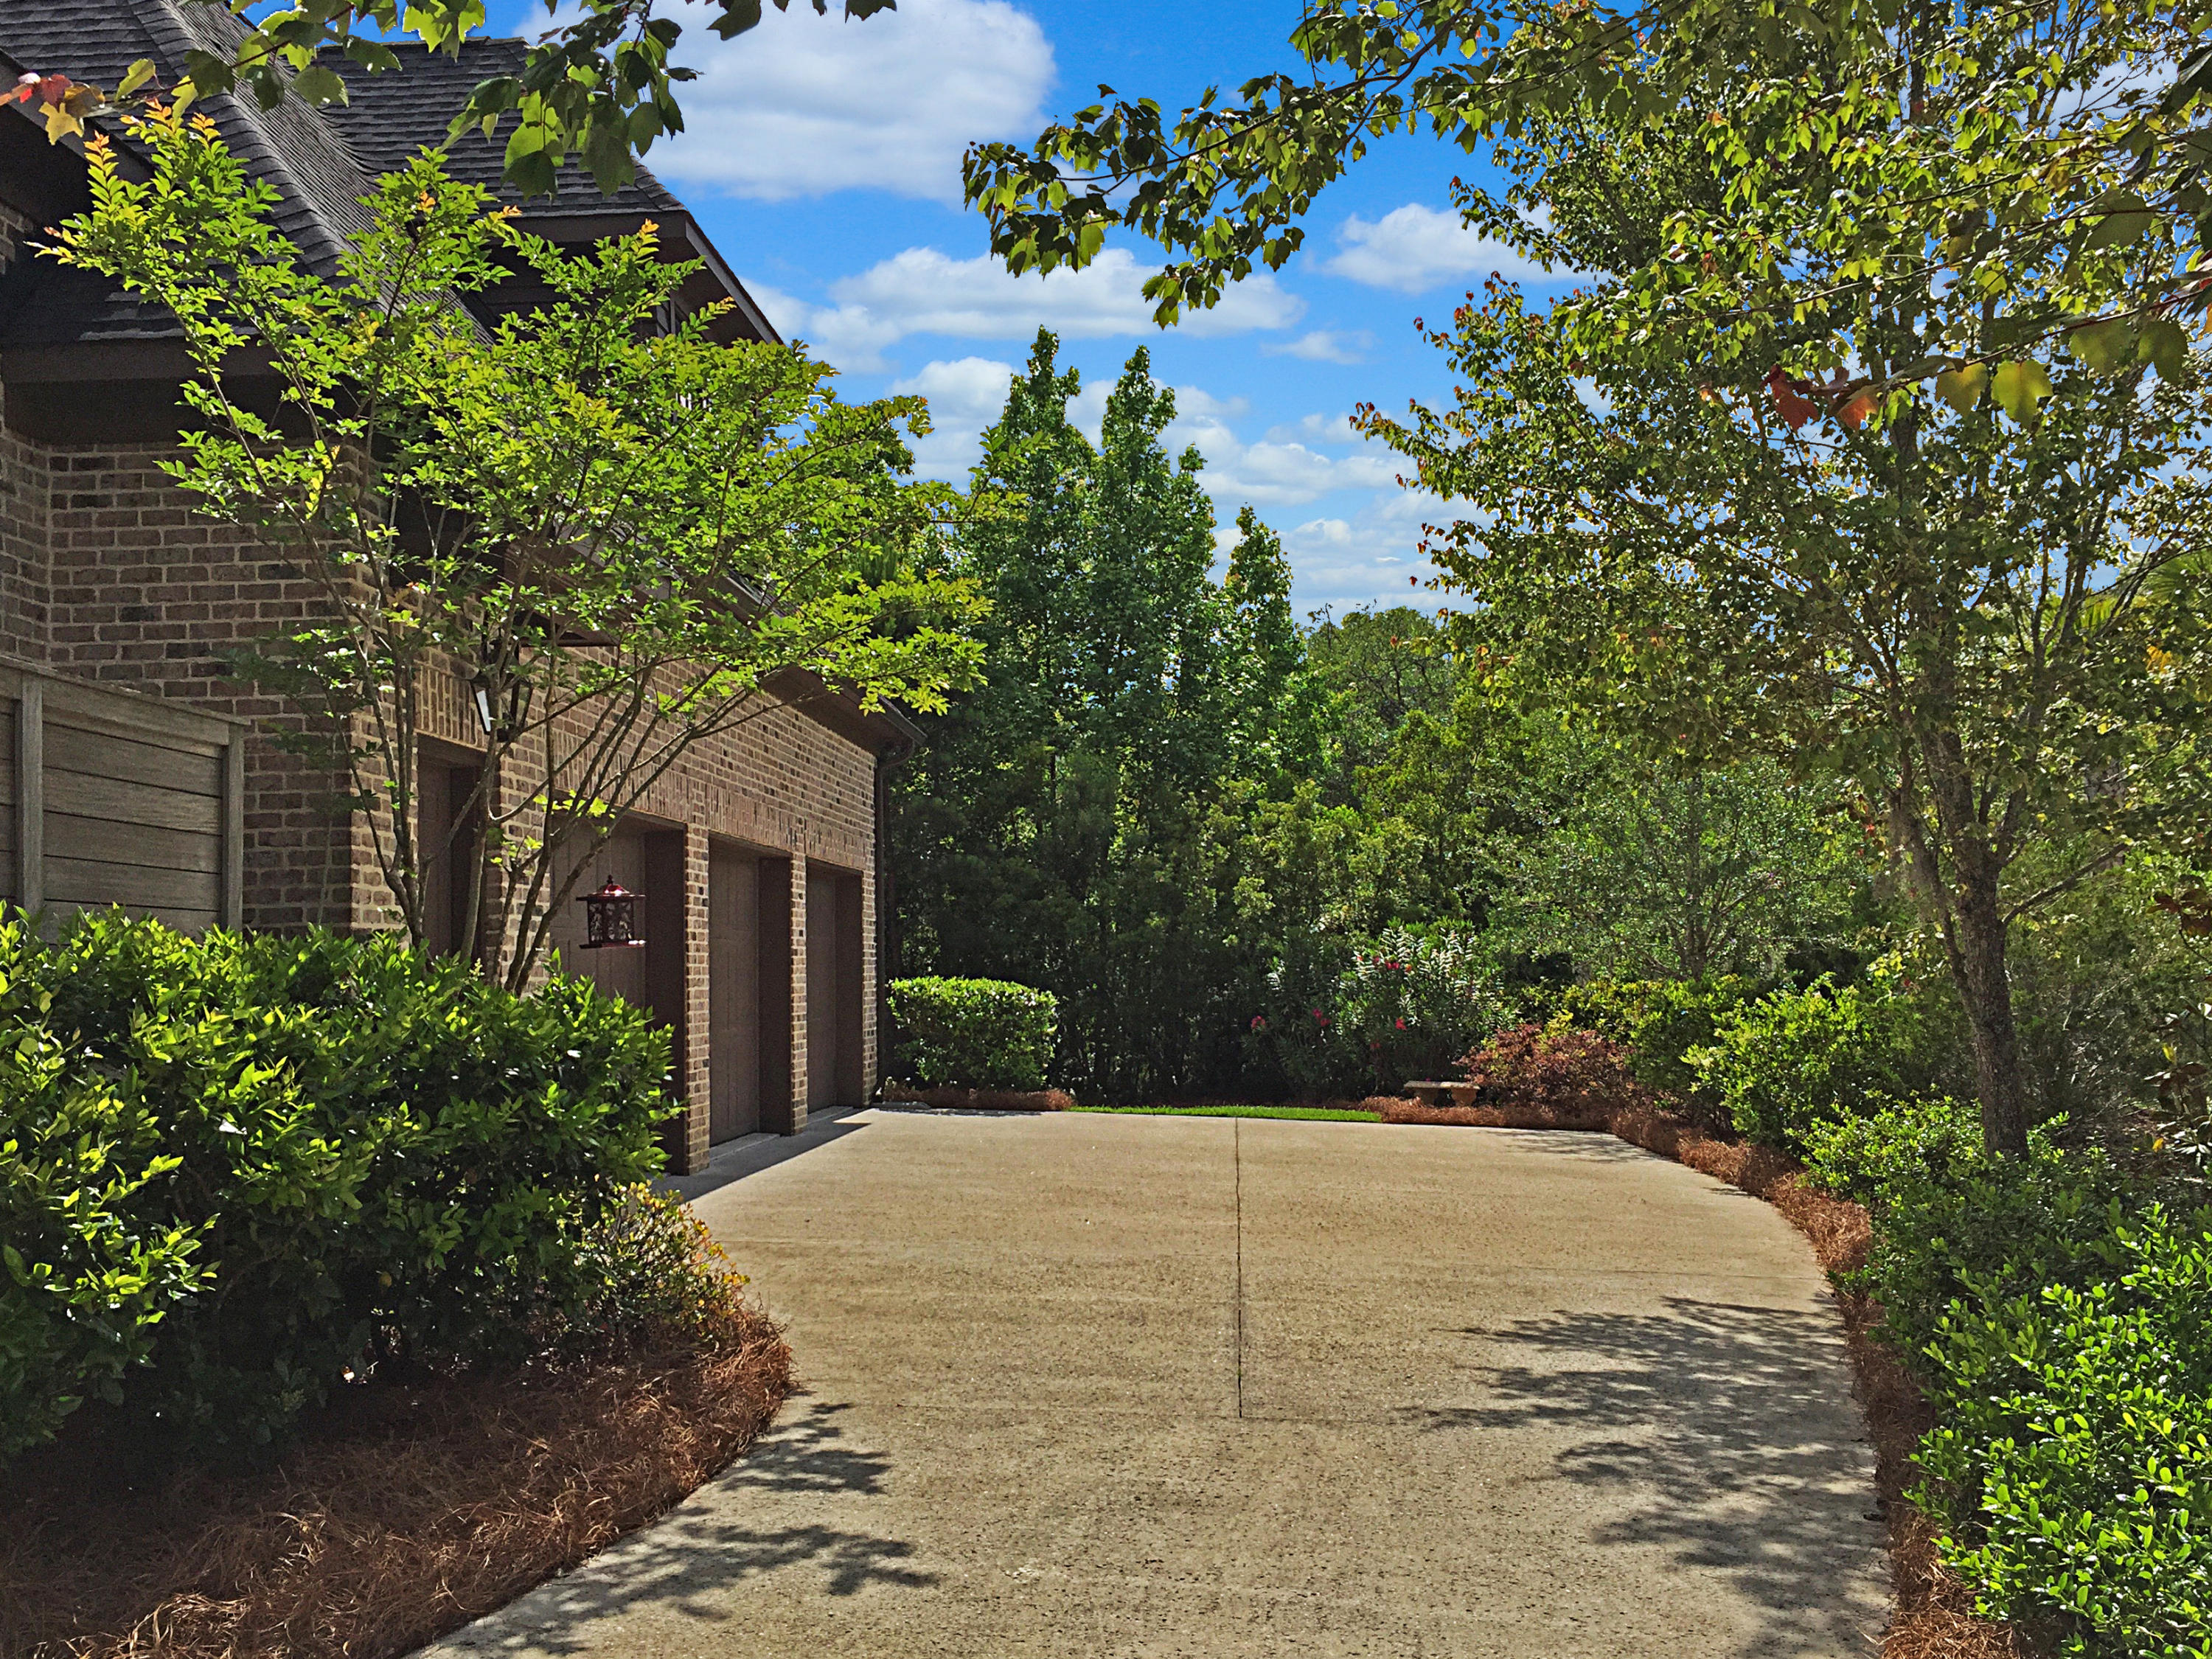 Daniel Island Park Homes For Sale - 290 Furman Farm, Charleston, SC - 31